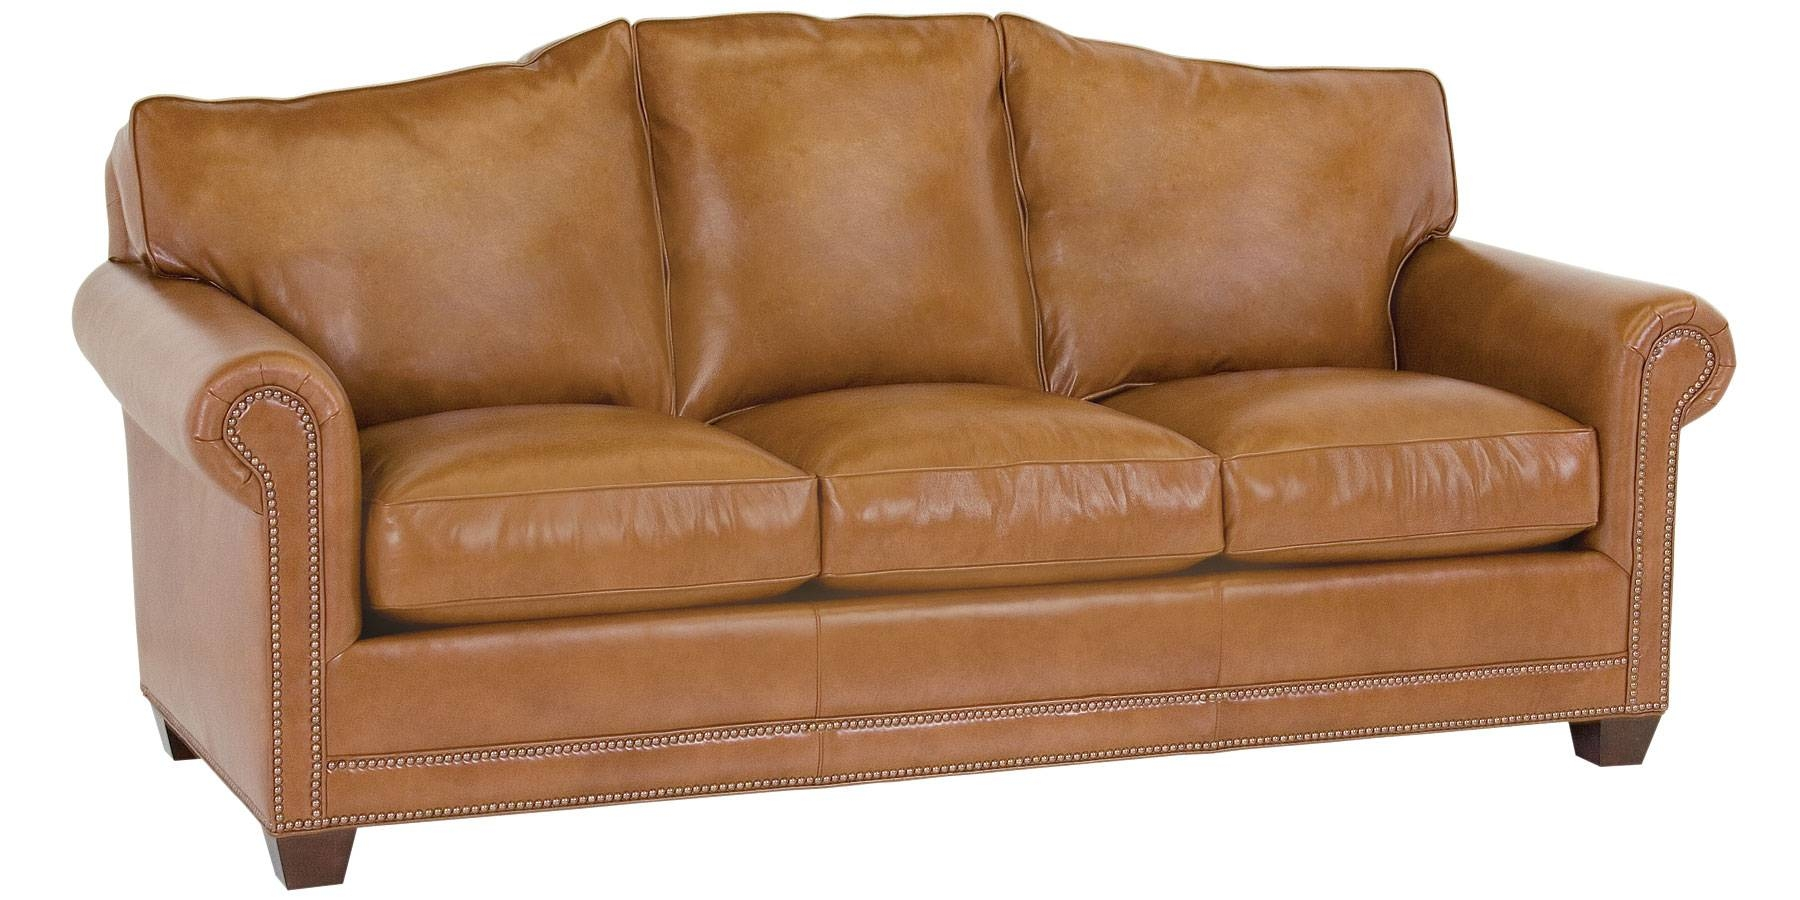 Leather Camel Back Sofa With Nailhead Trim | Club Furniture with regard to Camelback Leather Sofas (Image 9 of 15)